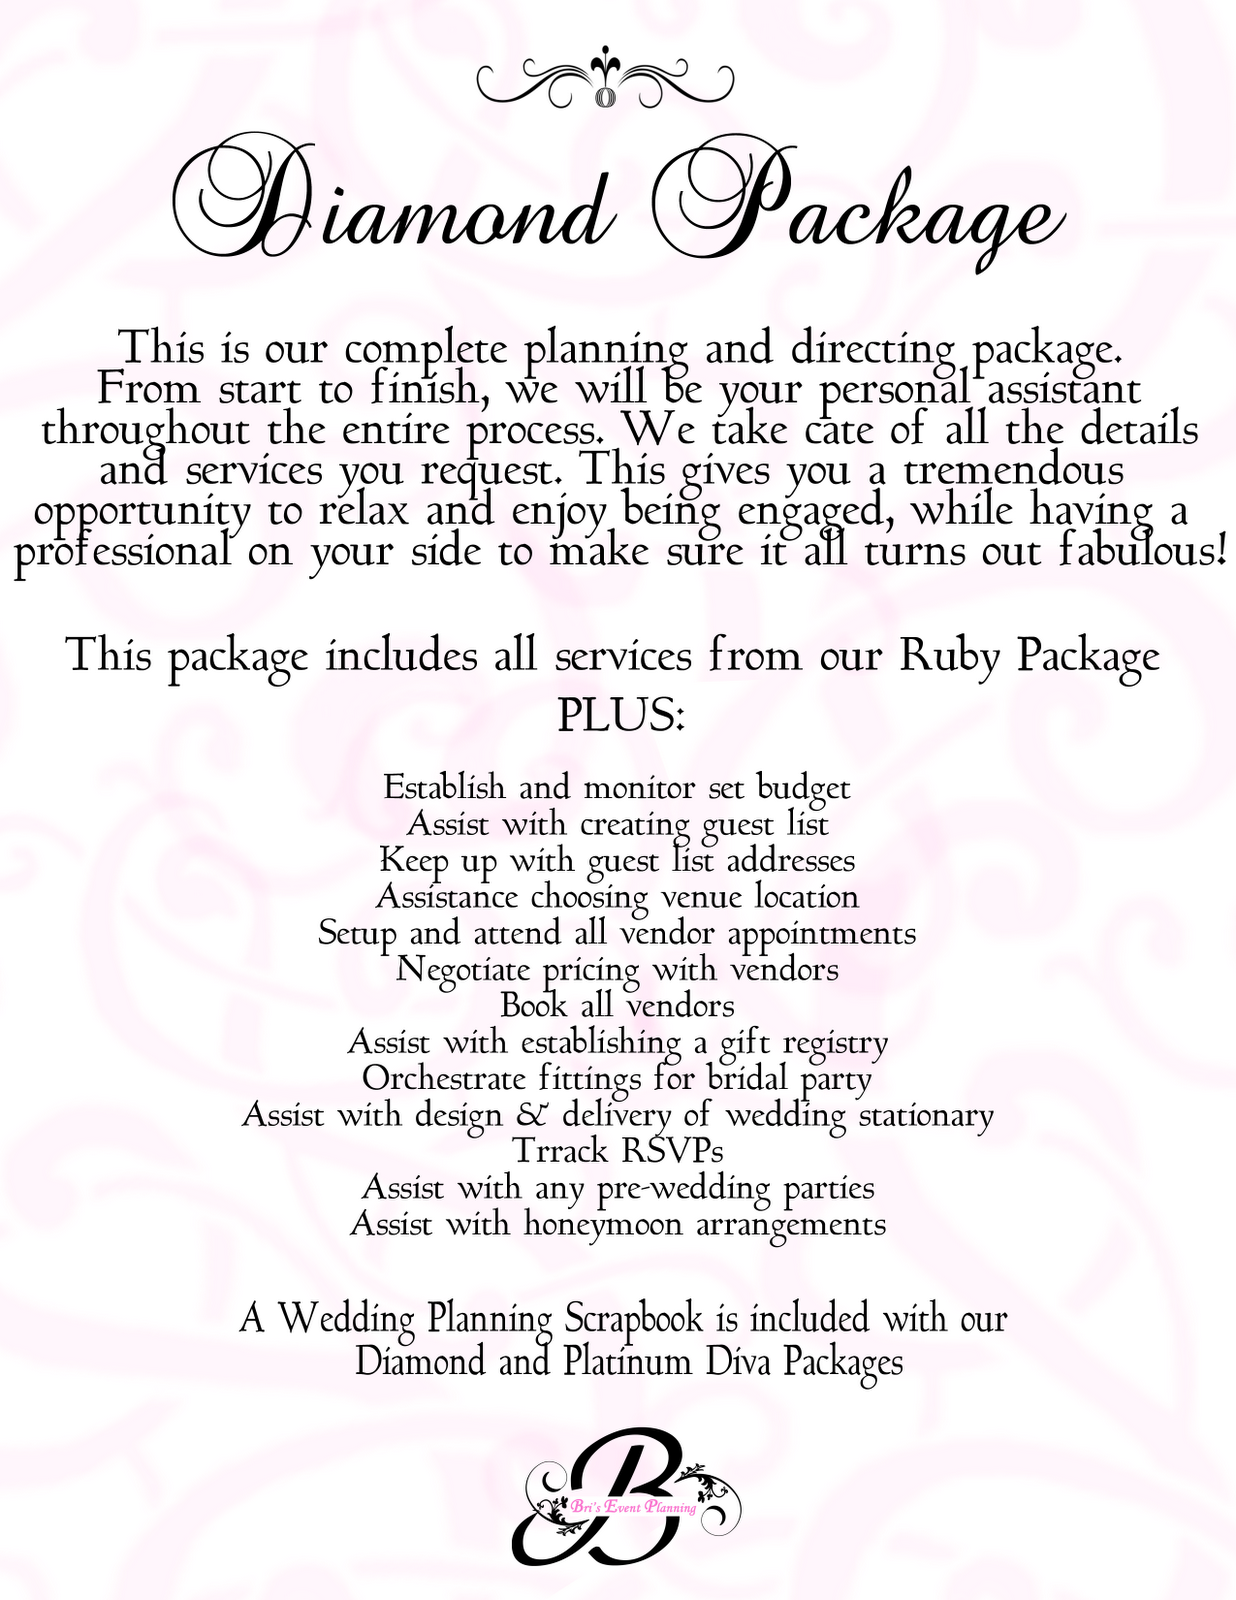 Bris Event Planning Our Wedding Packages